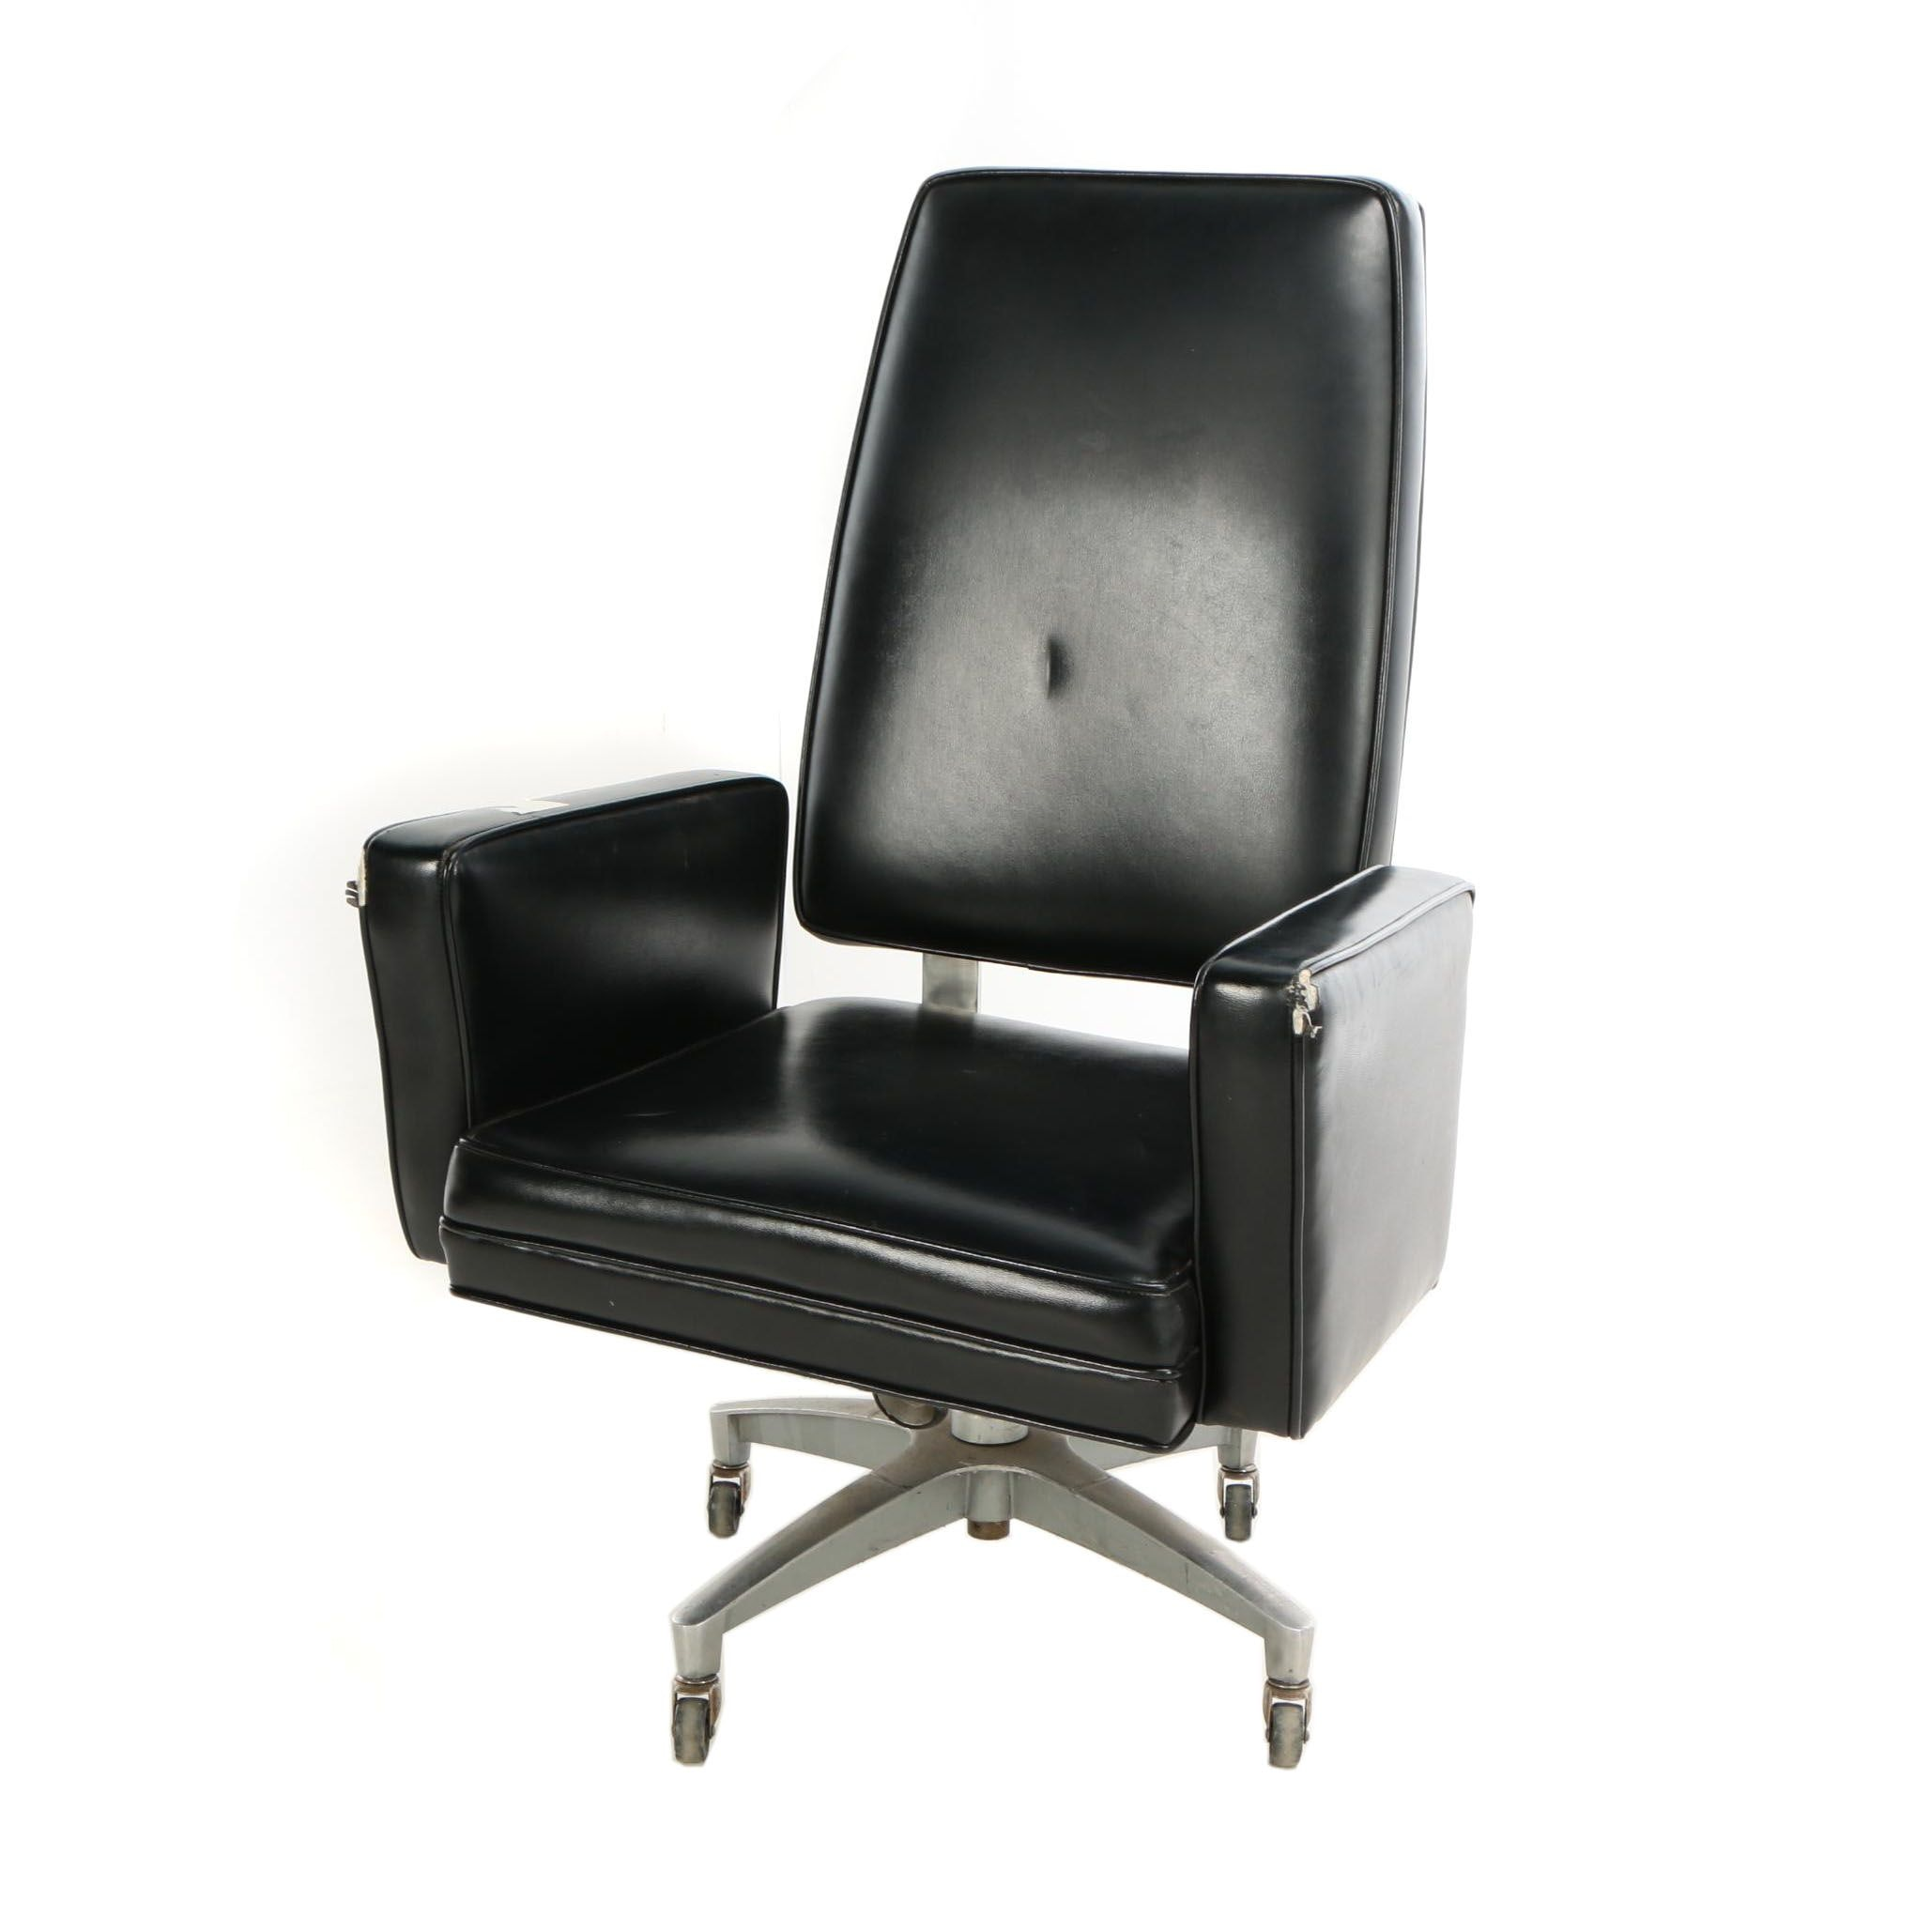 JG Furniture Co. Inc., Modernist Executive Swivel Armchair, Mid 20th Century